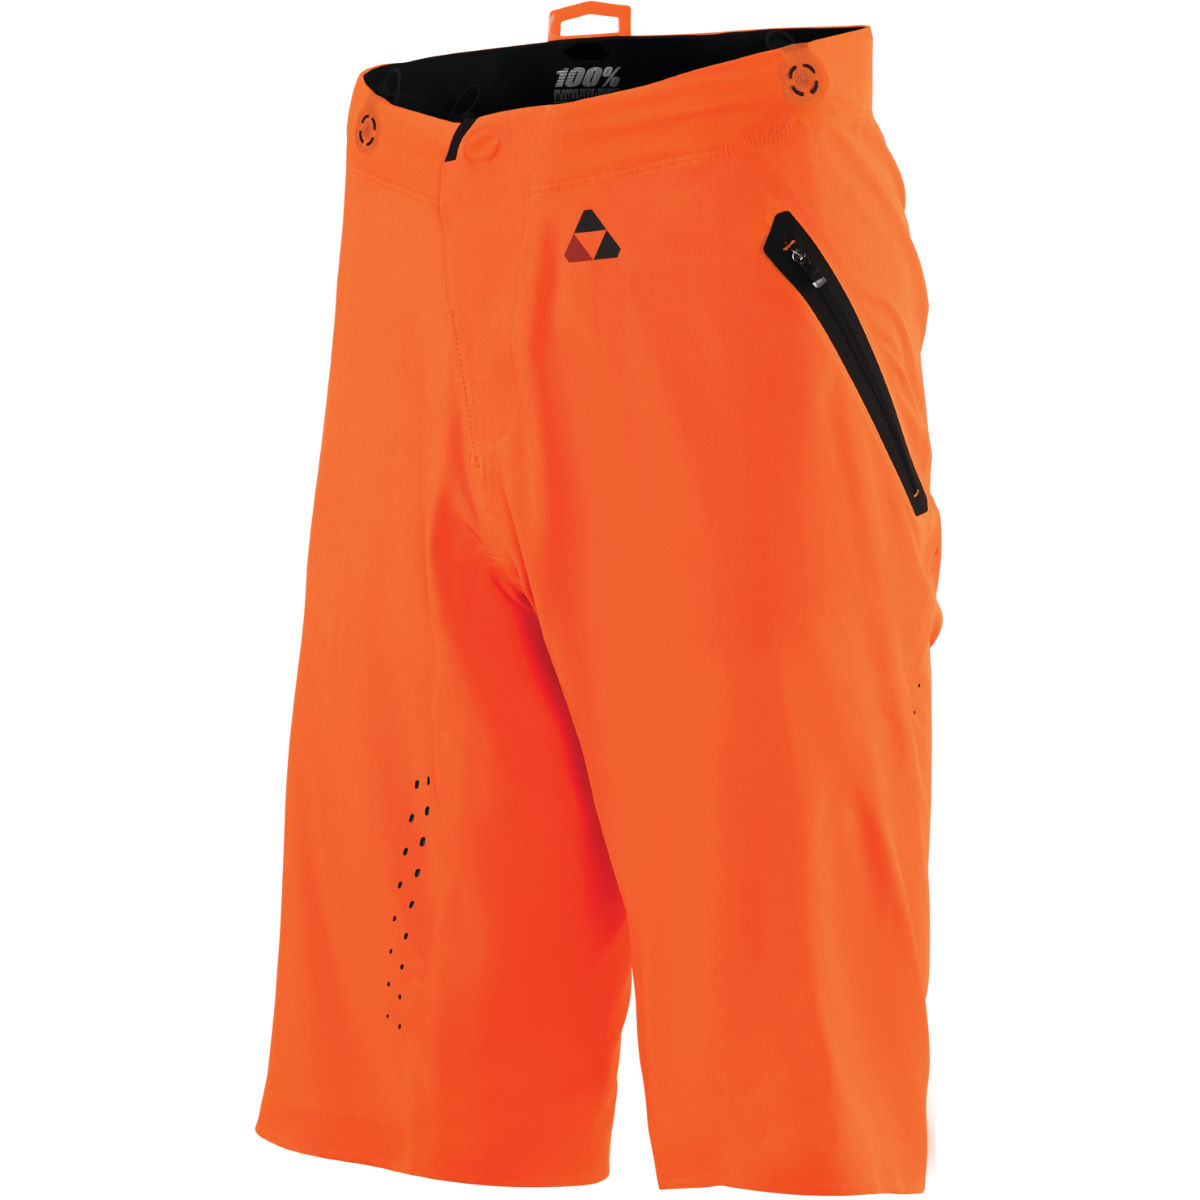 100% 100% Celium Solid Shorts   Baggy Shorts